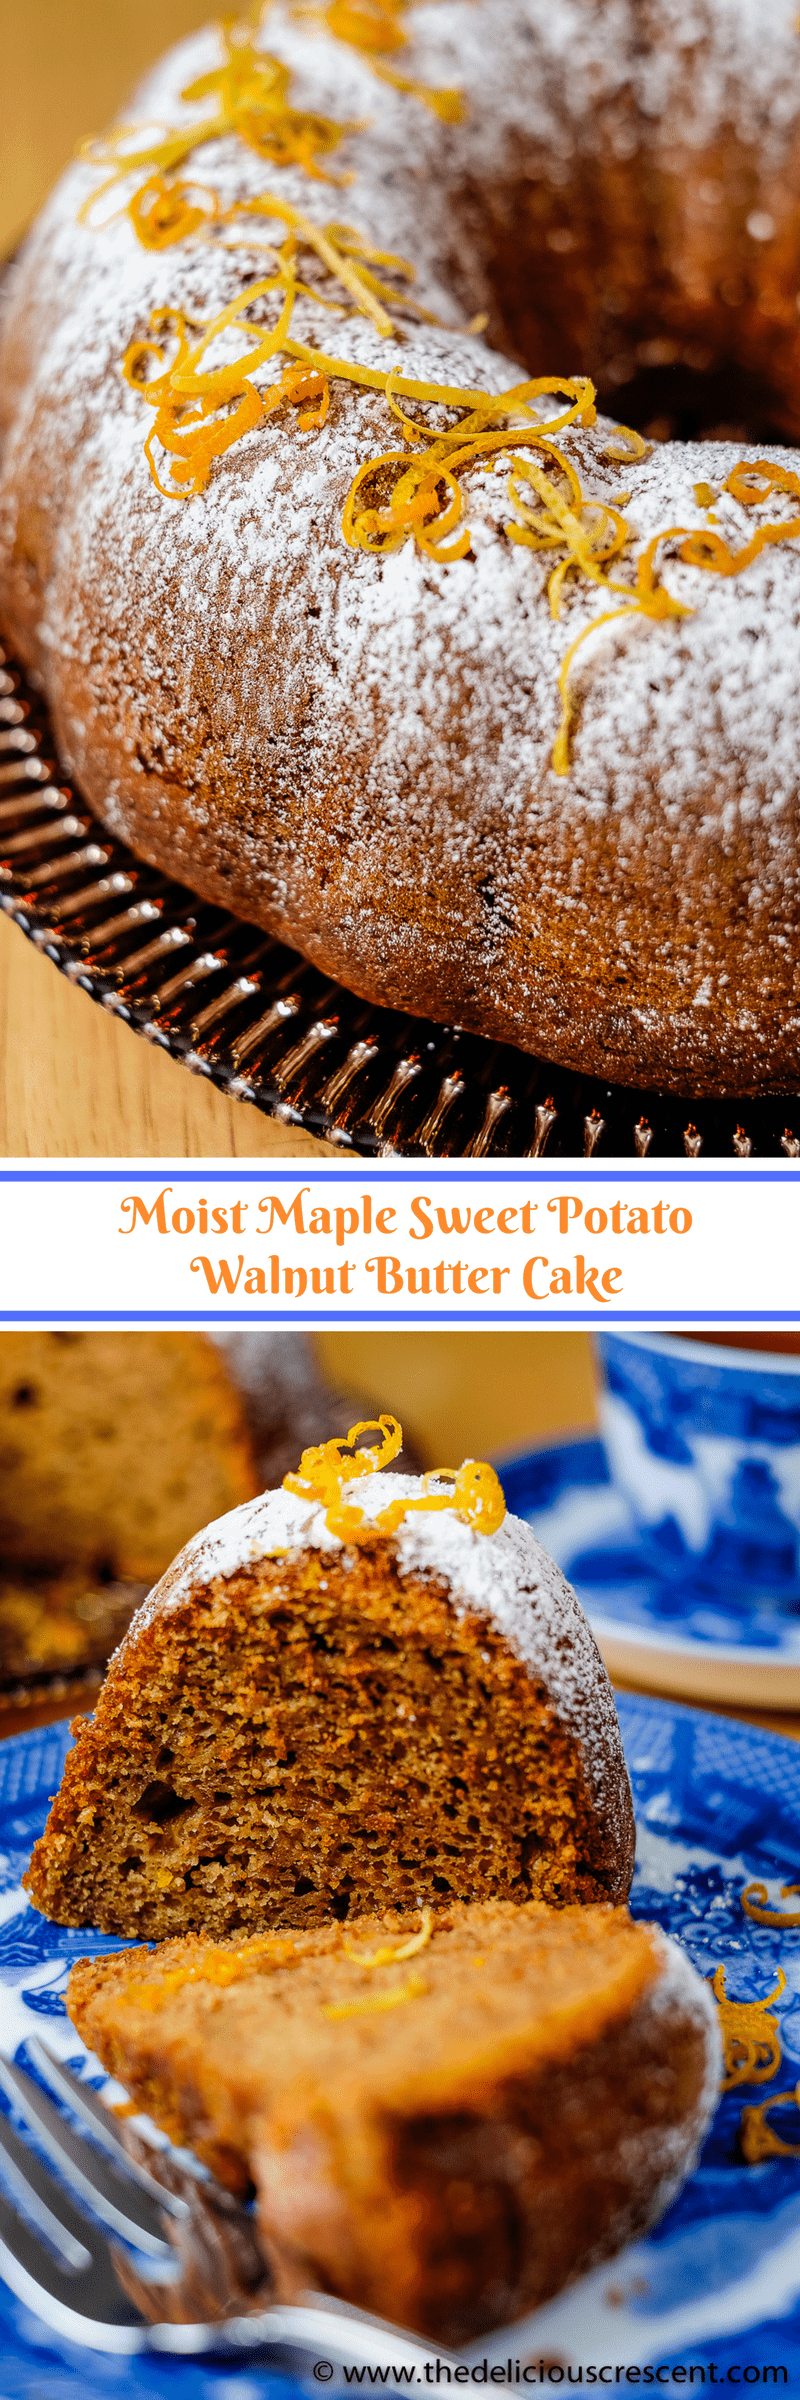 Moist Maple Sweet Potato Walnut Butter Cake is a healthier cake that is delicious, sweet and so moist. It is baked with walnut butter and maple syrup and packed with flavor and nutrients. | Sweet Potato Cake | Maple Cake | Walnut Butter Cake | Maple Walnut | Bundt Cake | #desserts #baking #vegetarian #cakes #easyrecipe